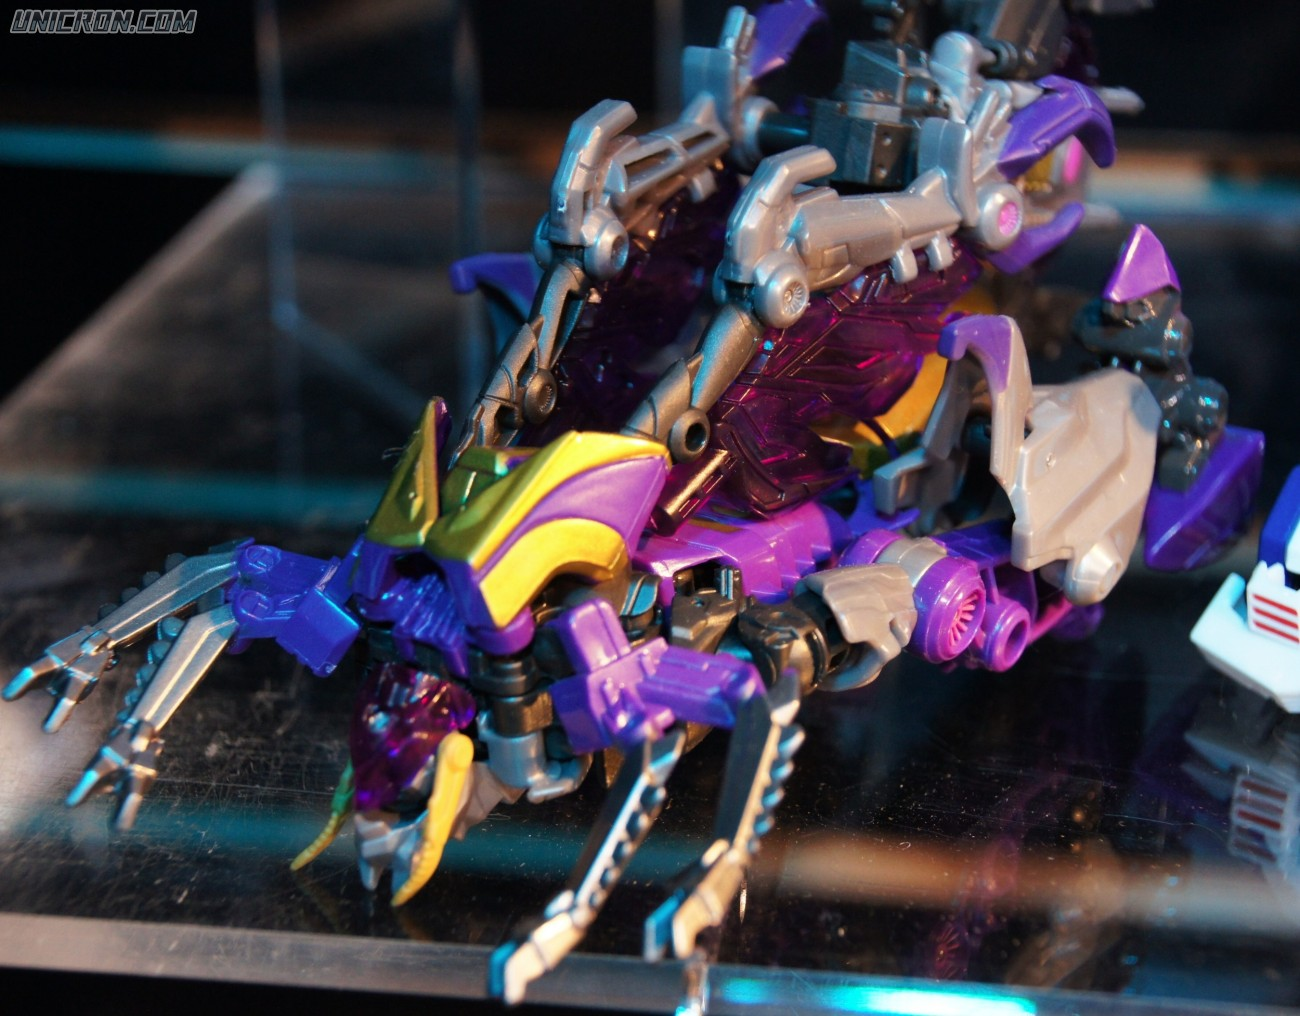 Transformers Generations Kickback (FoC -deluxe) toy